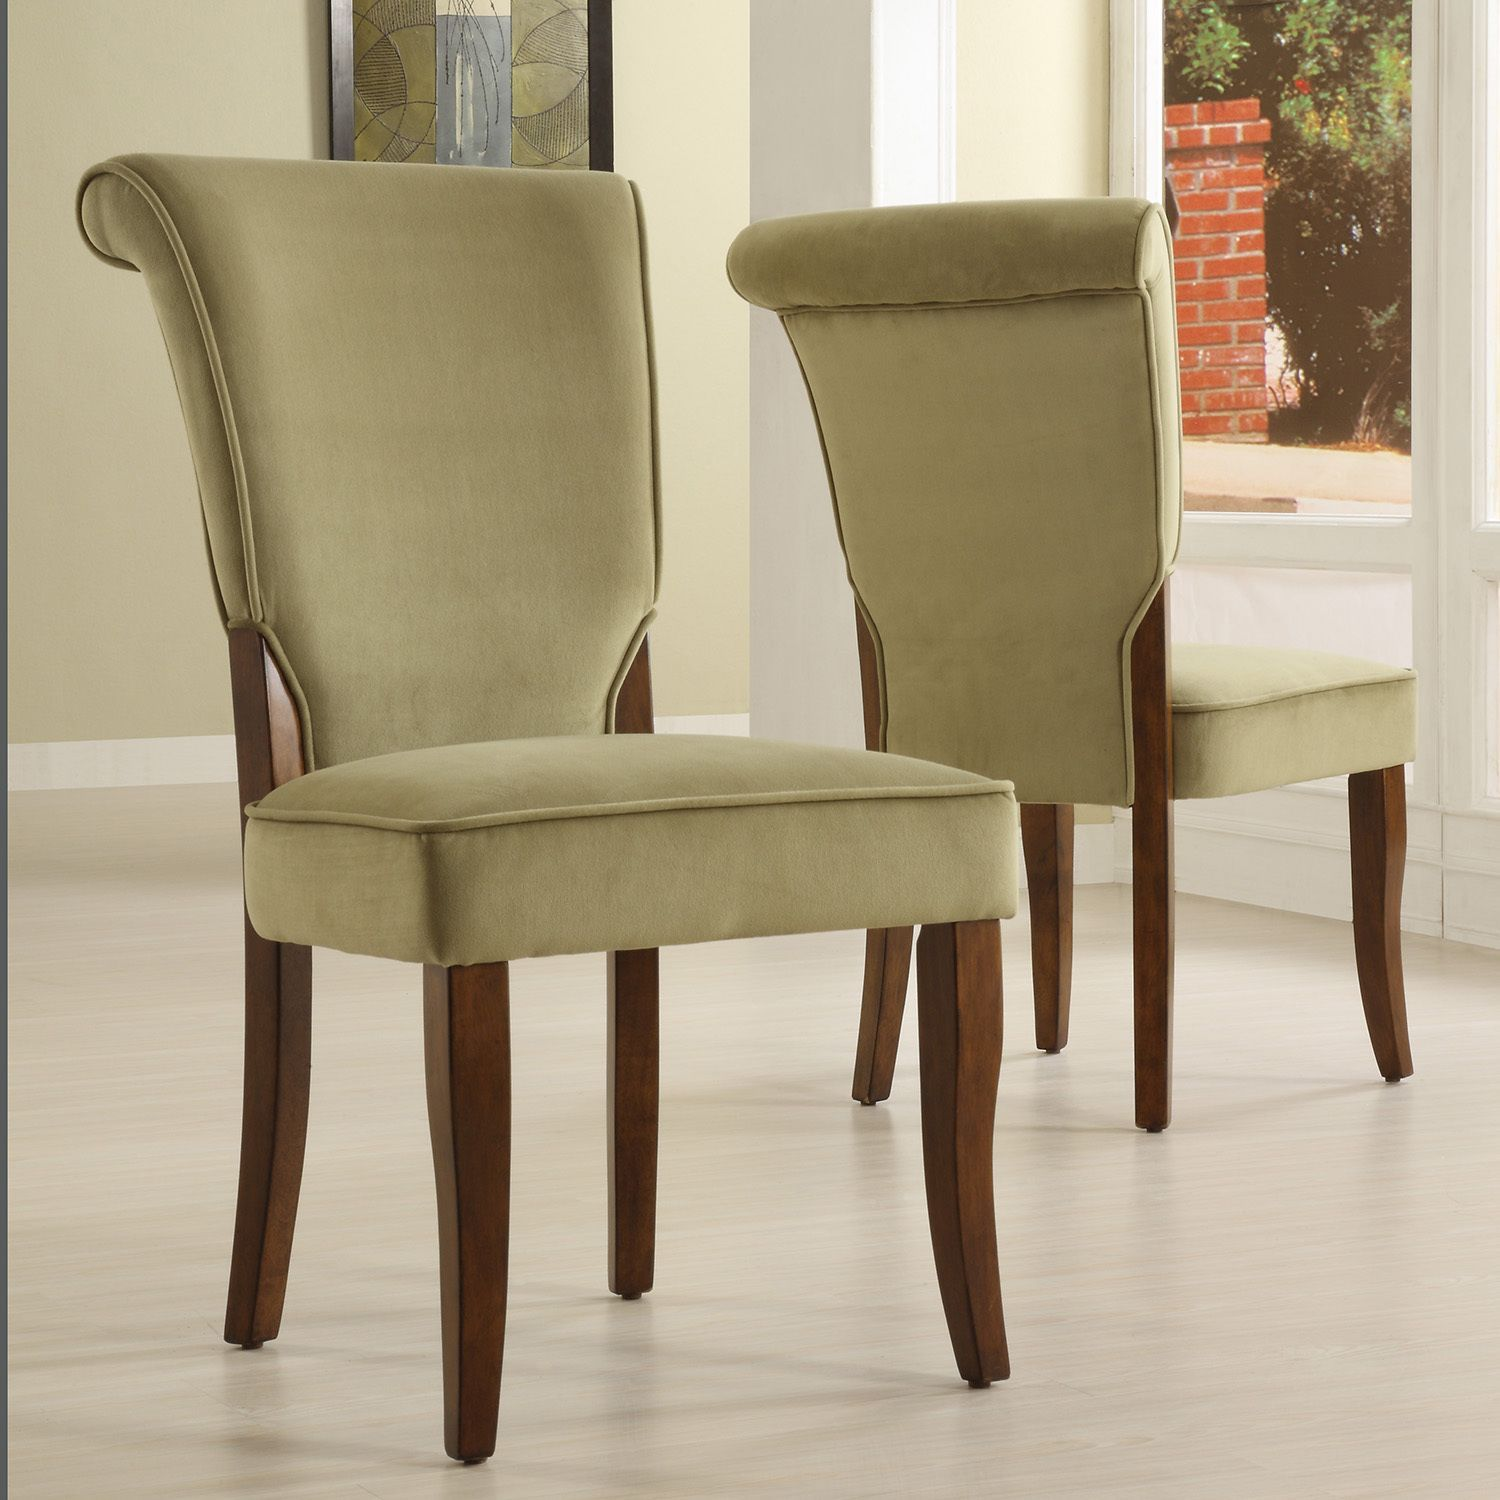 Andorra Sage Velvet Upholstered Dining Chair by Inspire Q (Set of 2), Green (Rubberwood)